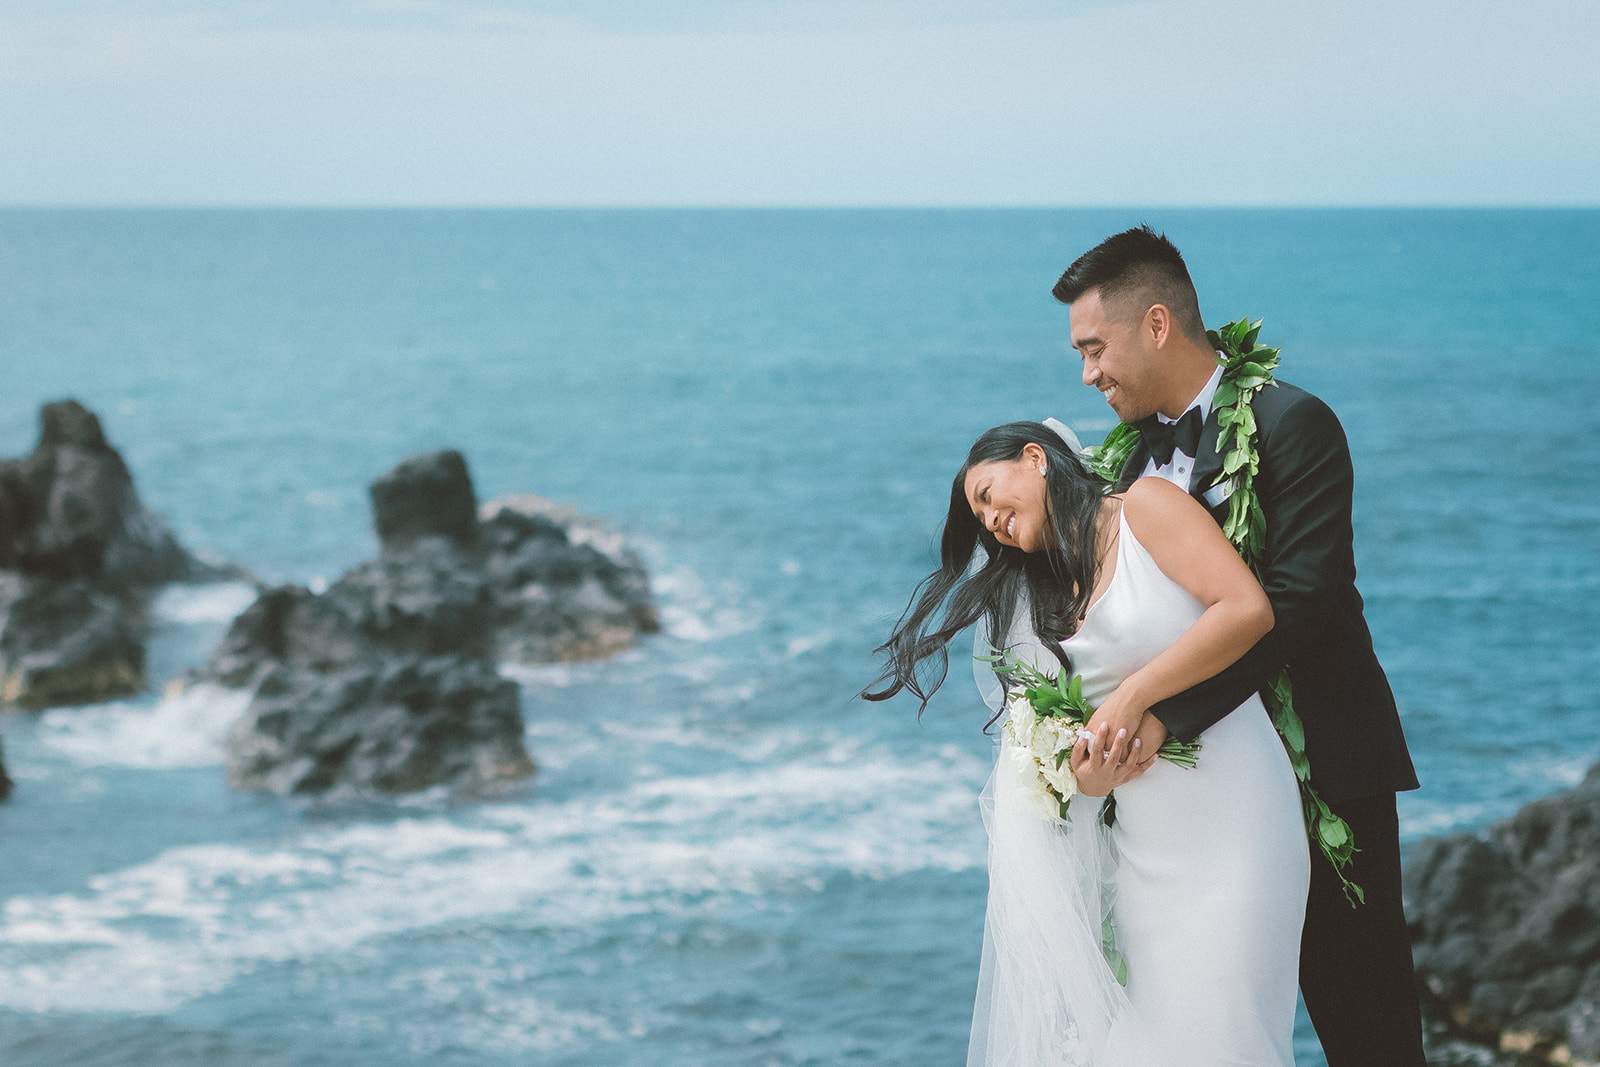 Haiku Mill Luxe Maui Wedding20190625_0182.jpg